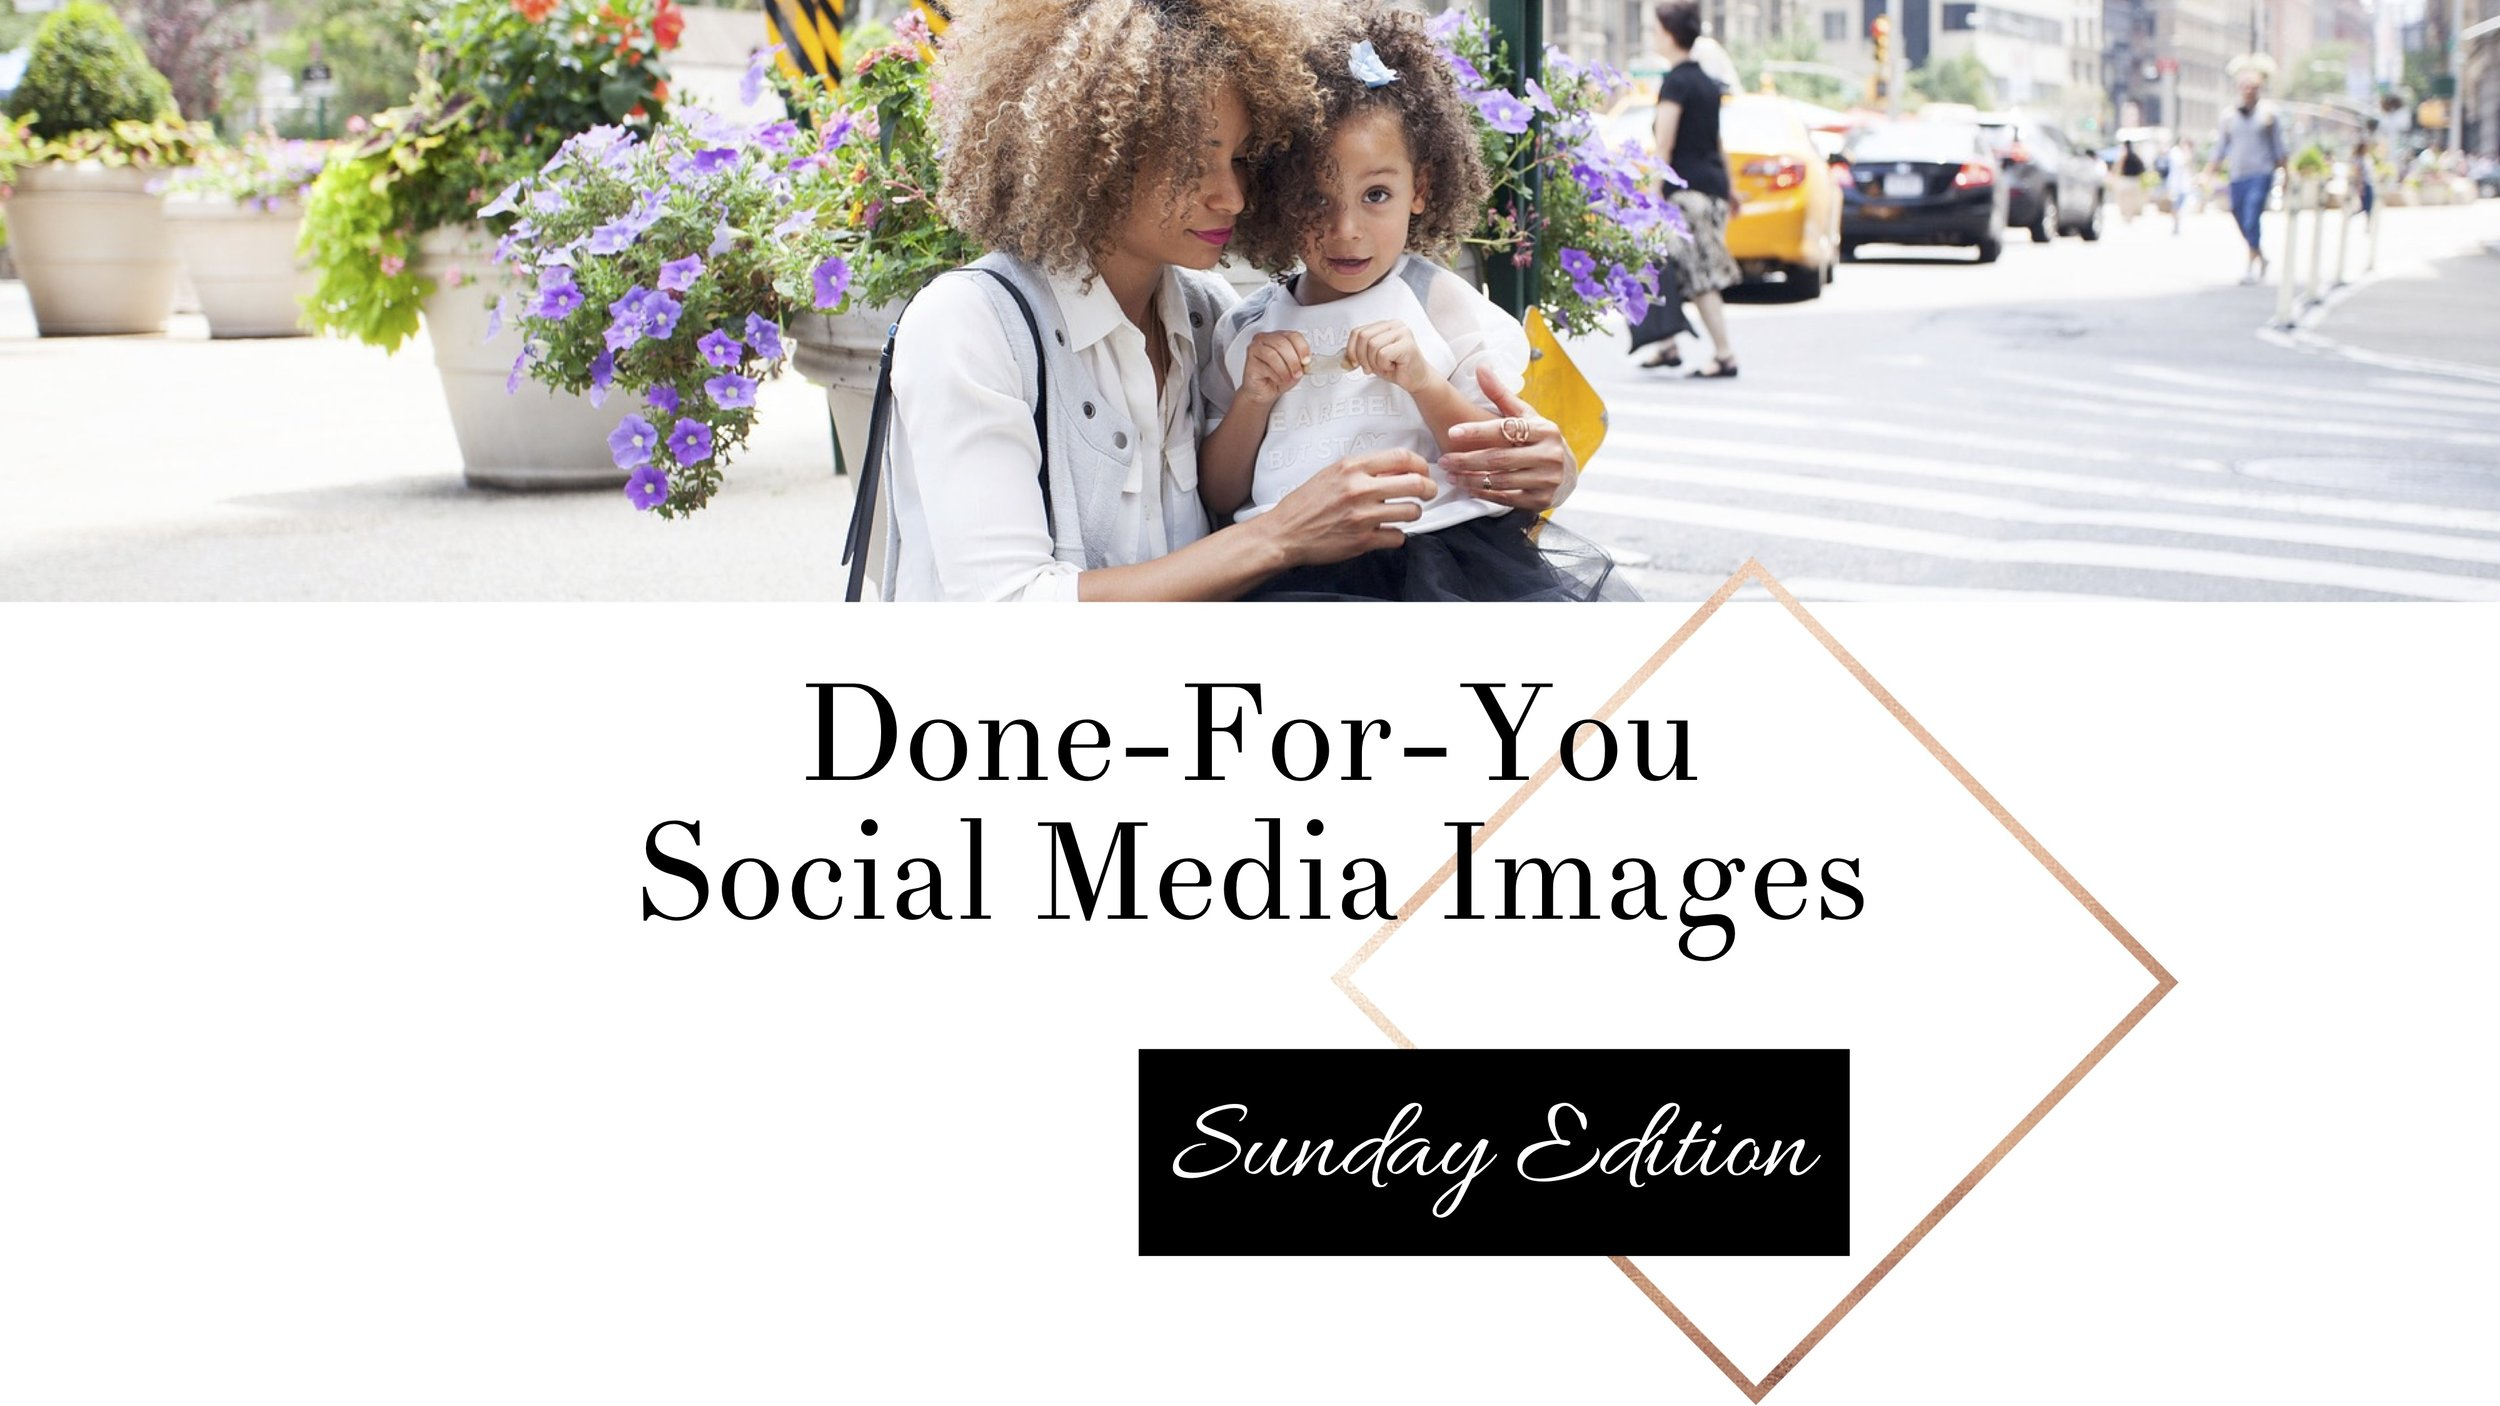 Done-For-You Social Media Images.jpg